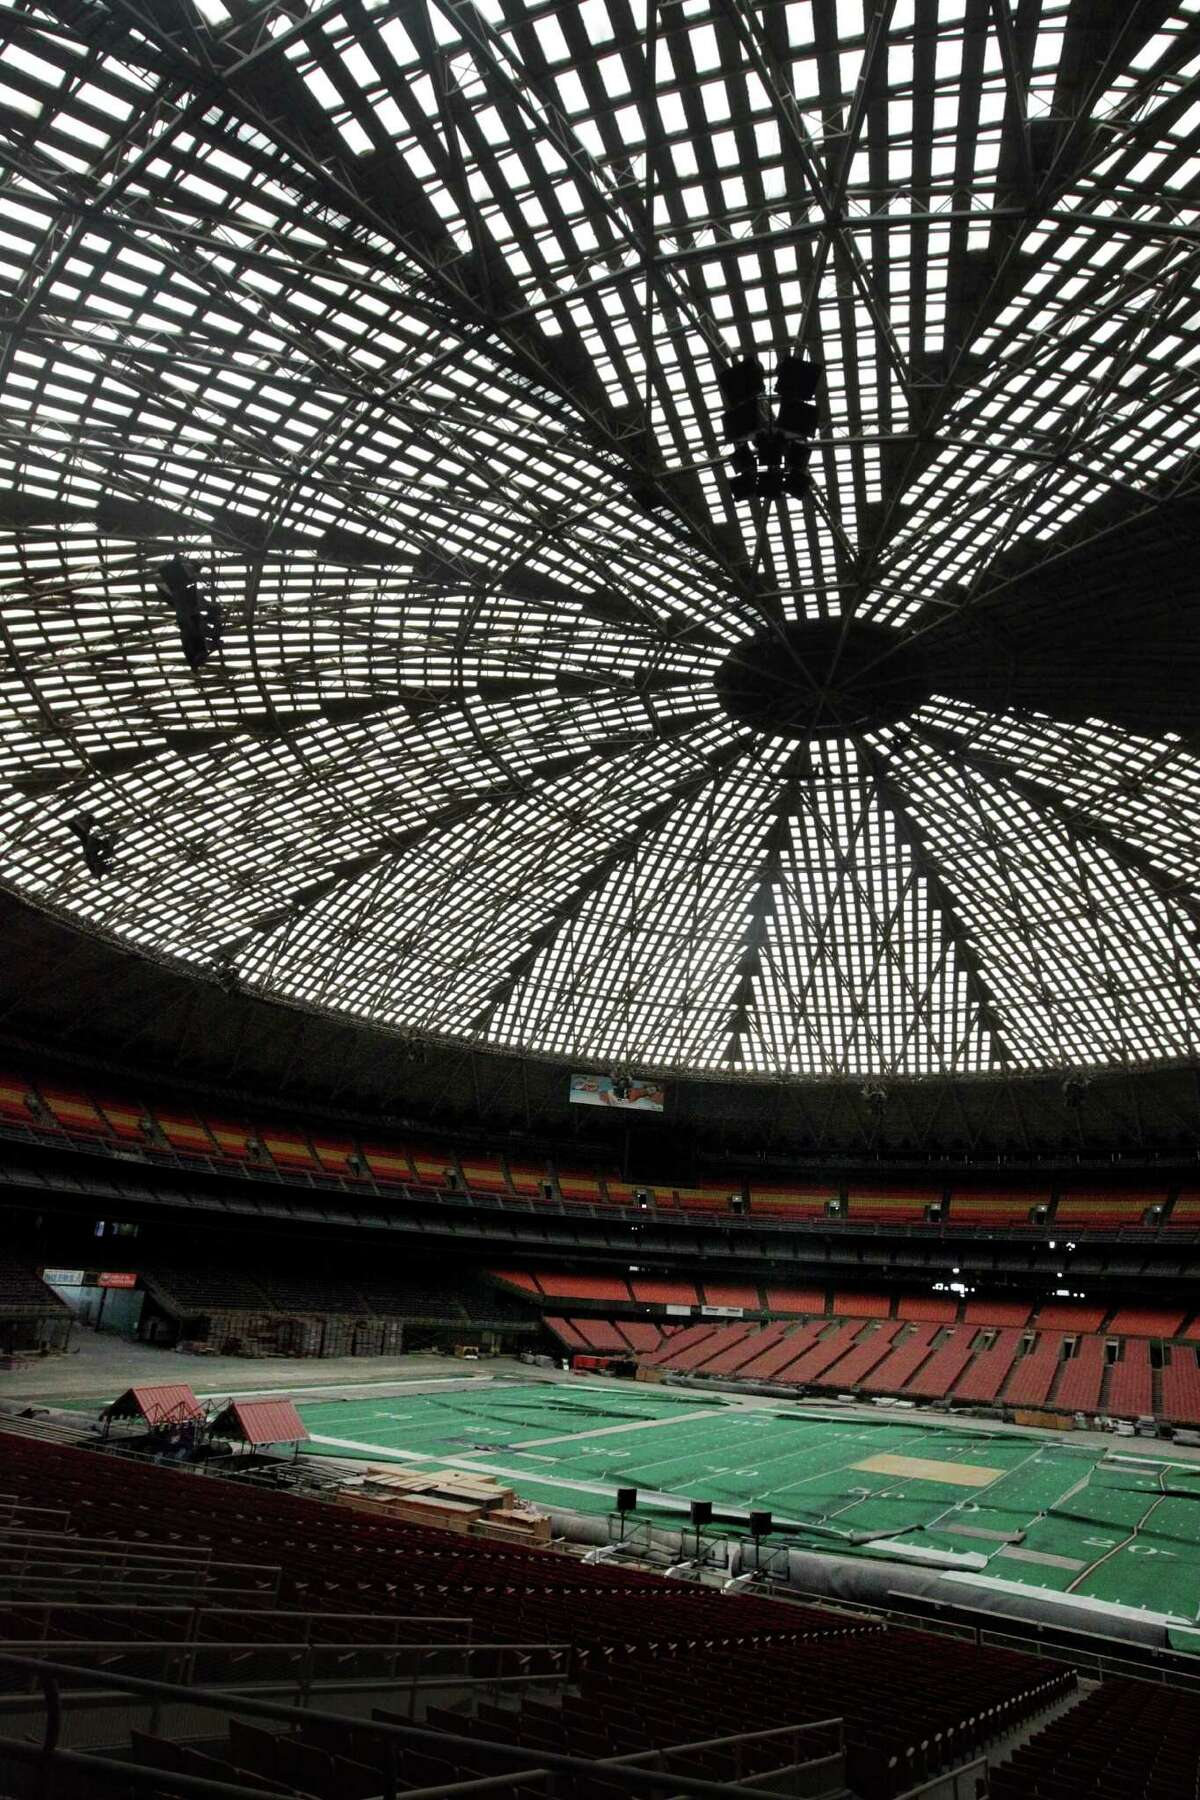 The Astrodome project calls for stripping out the seats and installing a floor at street level.